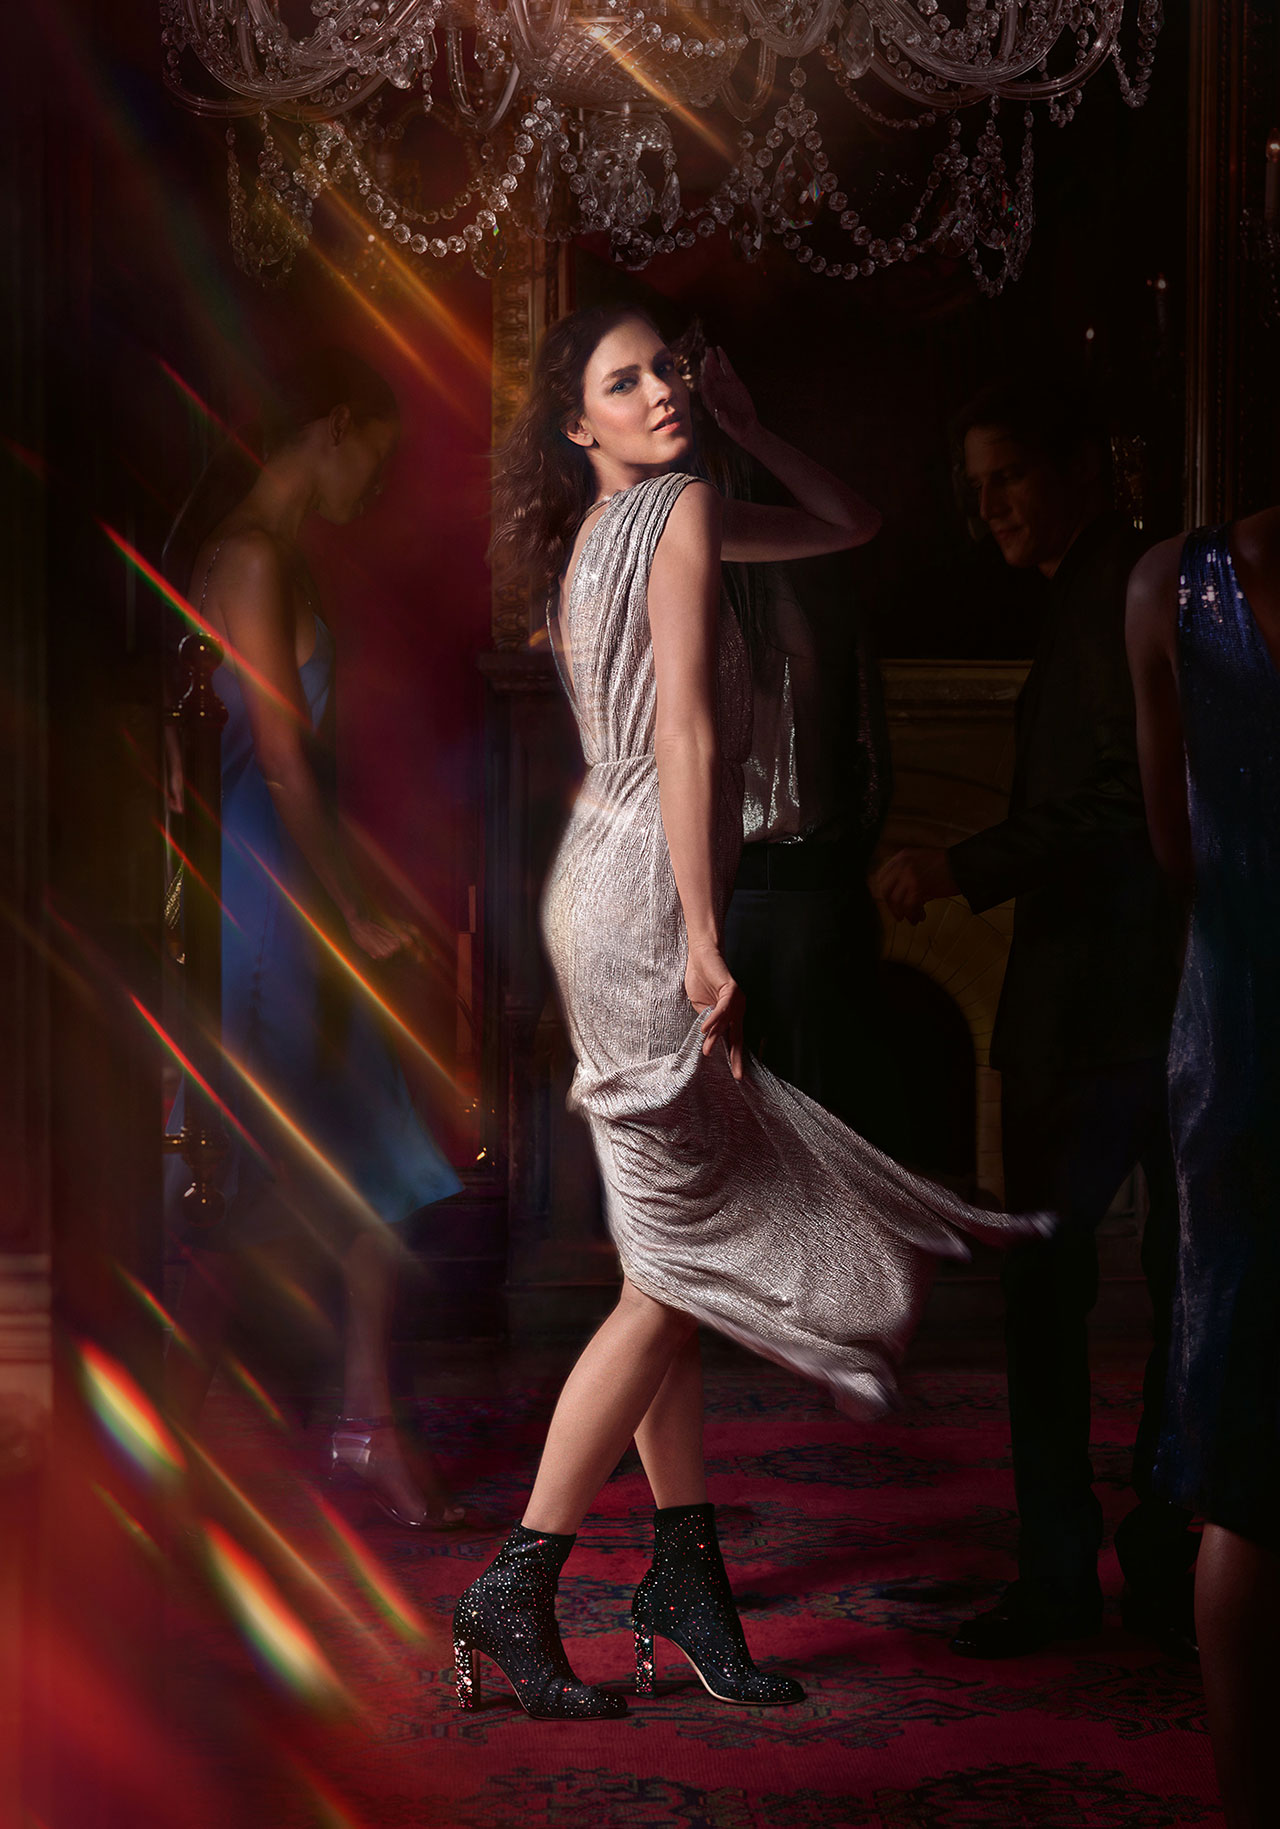 Shot by Serge Leblon, the campaign stars models Kati Nescher and Roch Babot. | ©︎ Jimmy Choo